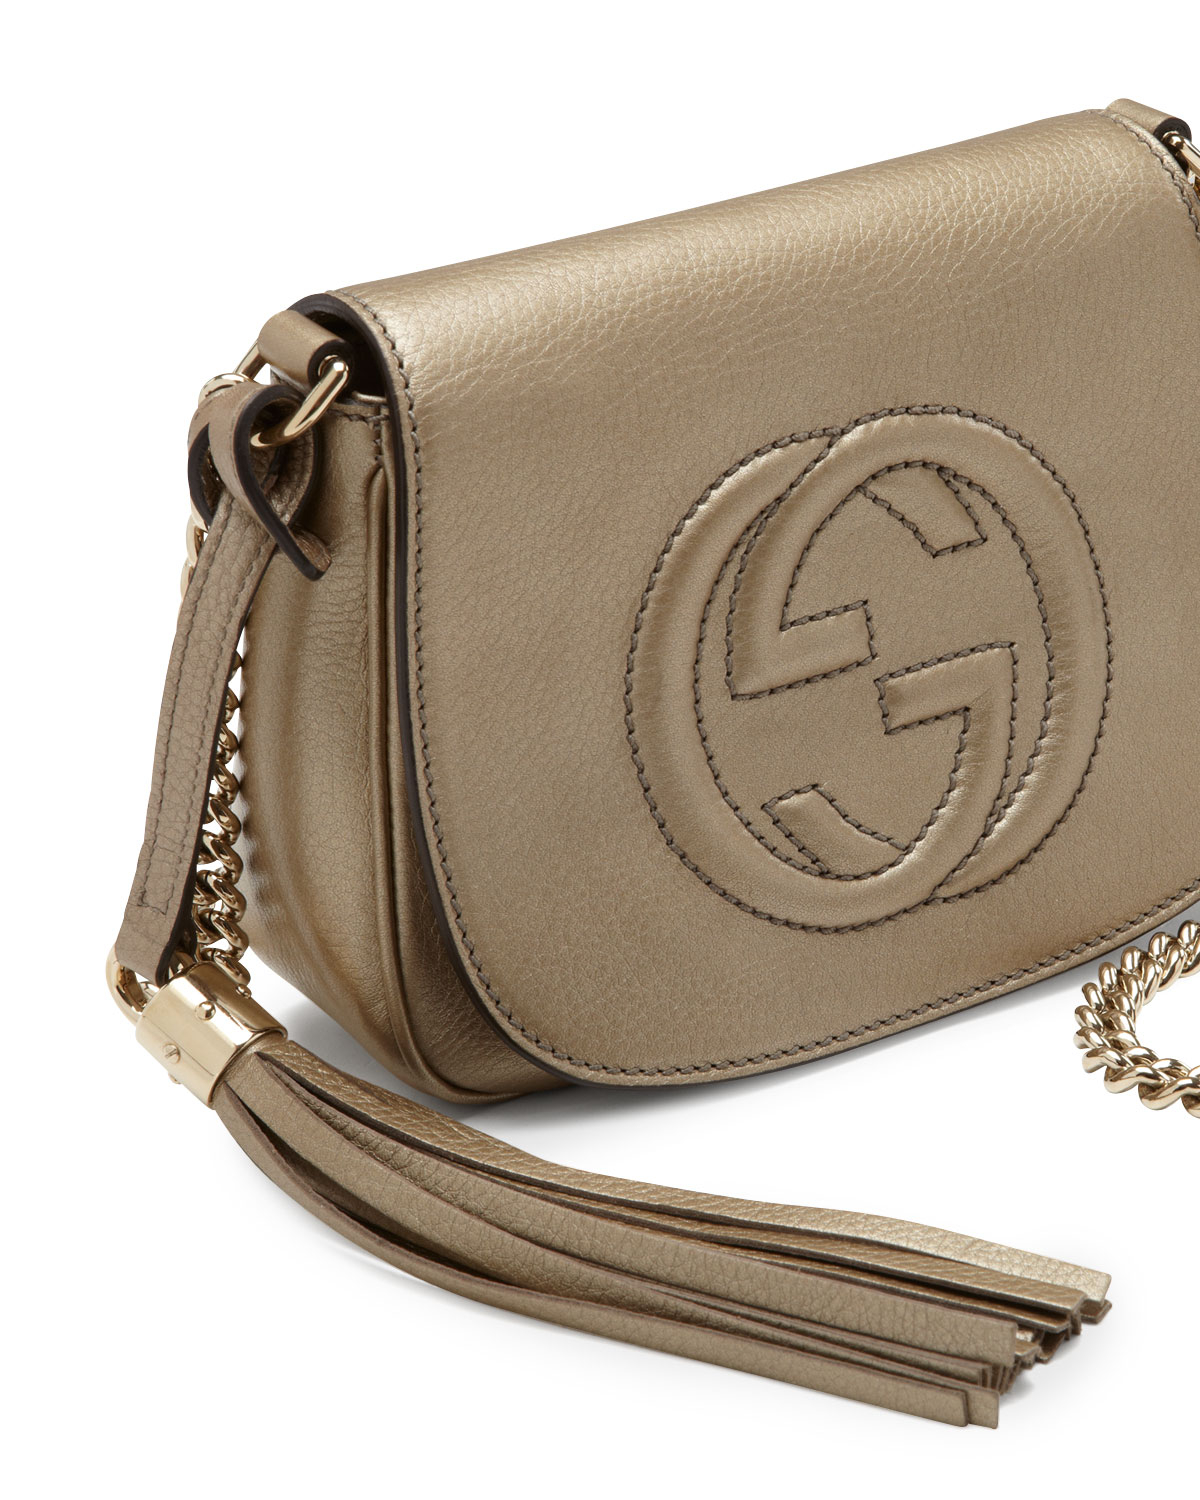 f3ebbe768f5a Gallery. Previously sold at: Bergdorf Goodman · Women's Gucci Soho Bag